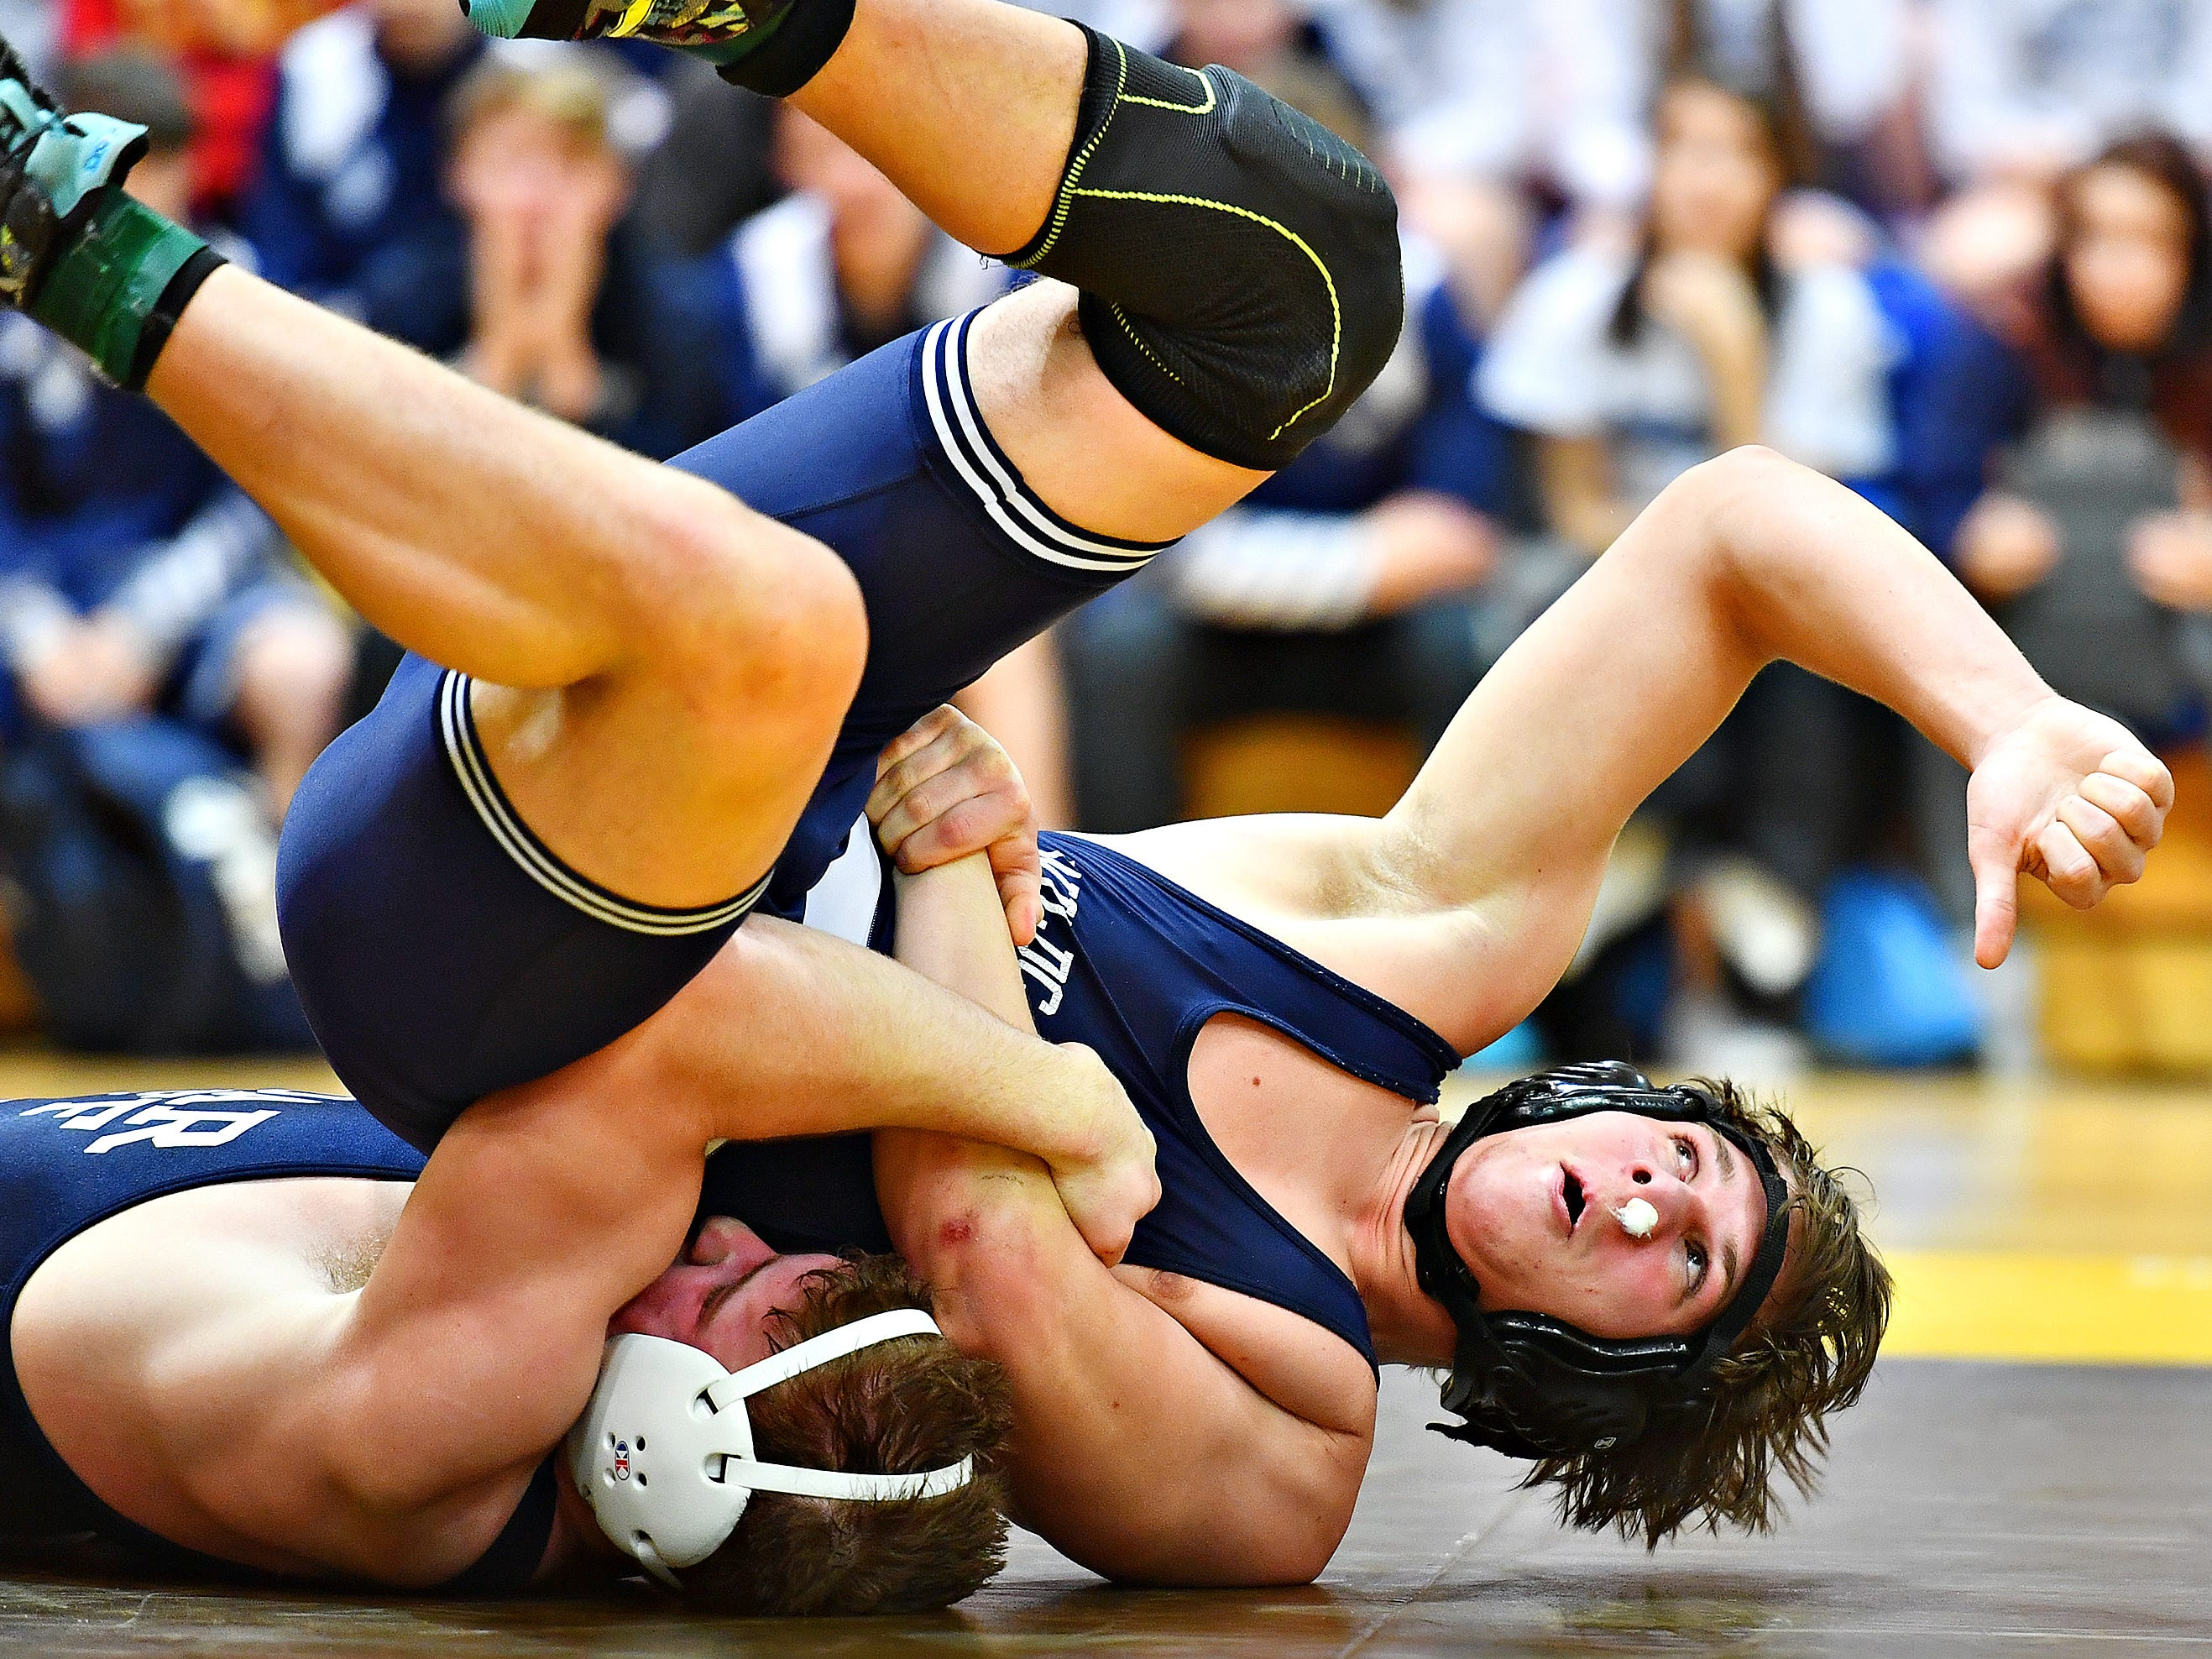 Dallastown's Andrew Smith, top, wrestles Cedar Cliff's Donovan Ball in the 195 pound weight class during District 3, Class 3A wrestling championship action at Milton Hershey High School in Hershey, Saturday, Feb. 2, 2019. Dawn J. Sagert photo